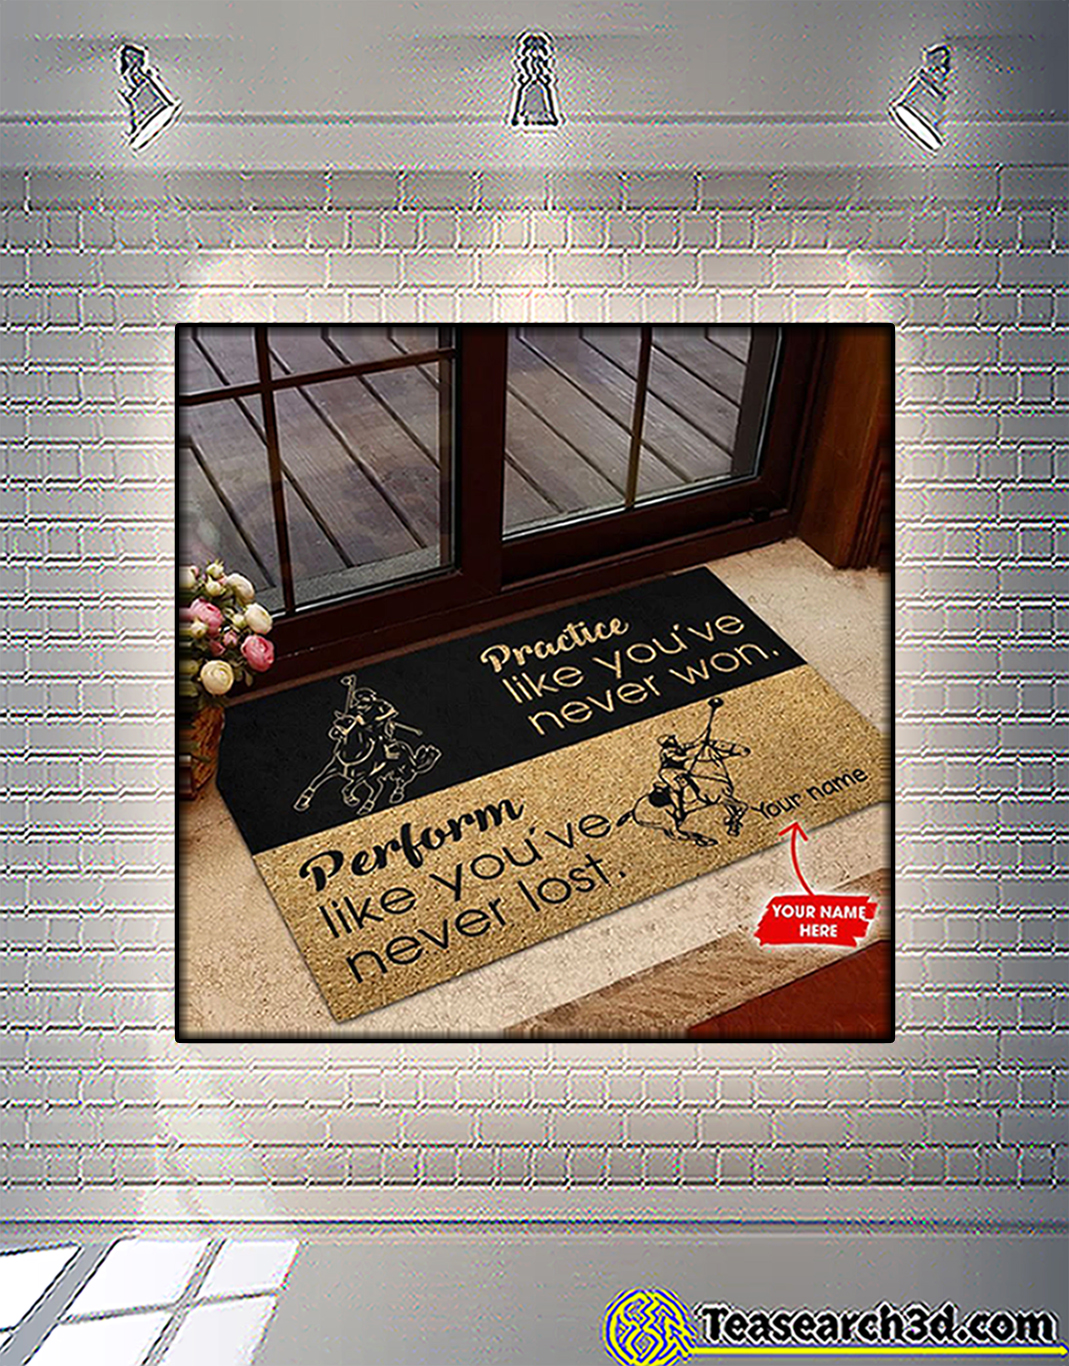 Personalized custom name polocrosse practice like you've never won doormat 1